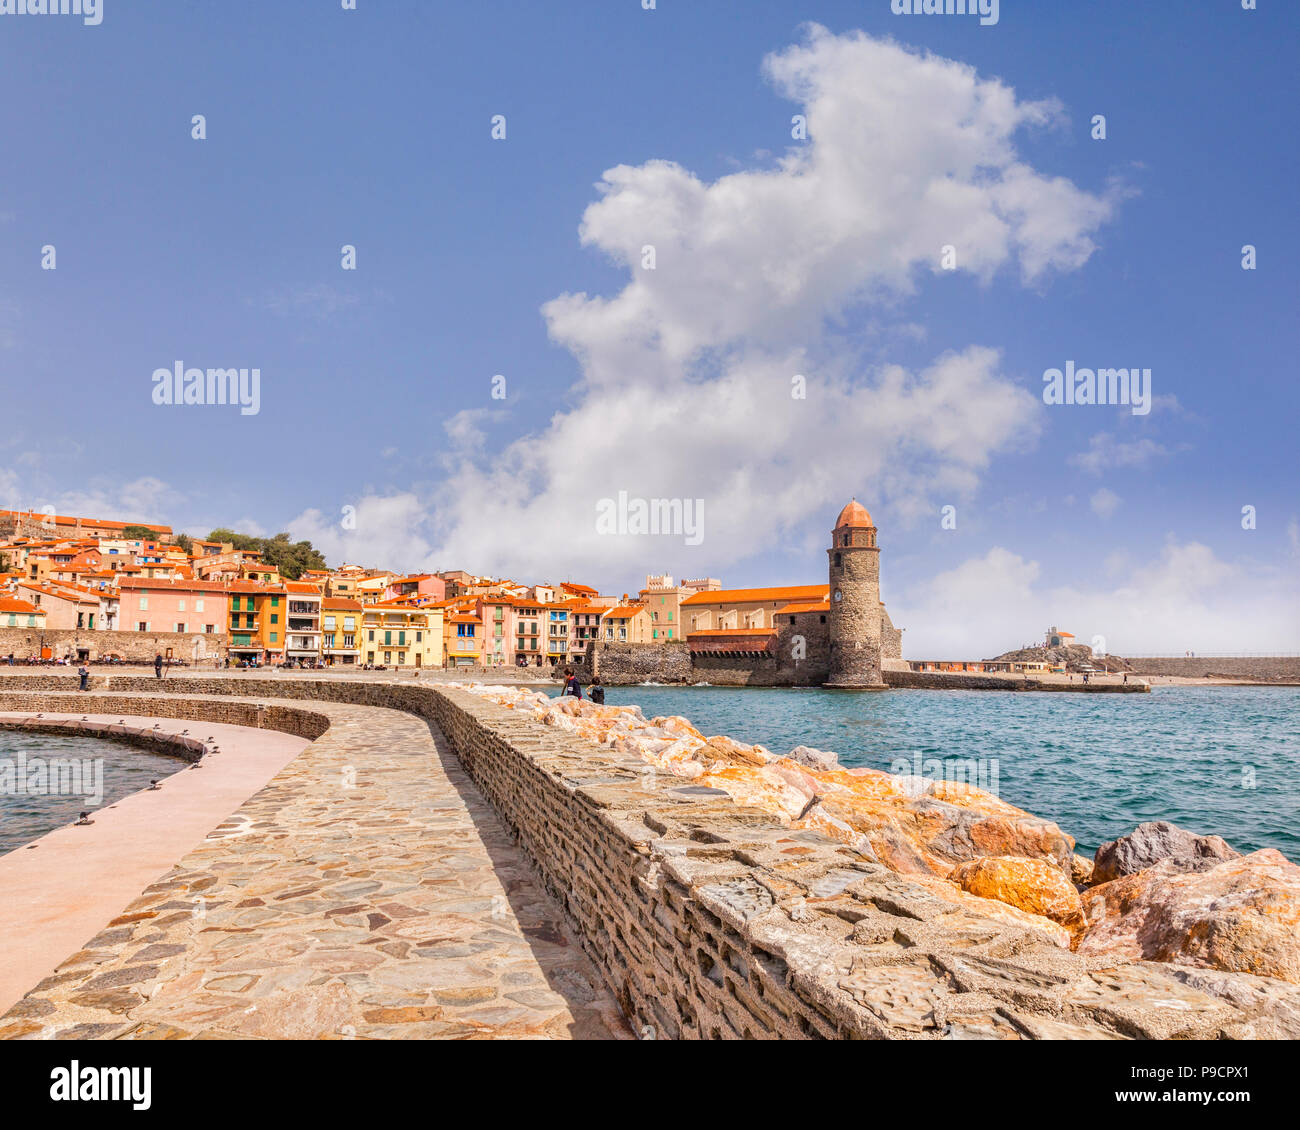 Collioure, Languedoc-Roussillon, Pyrenees-Orientales, France. - Stock Image